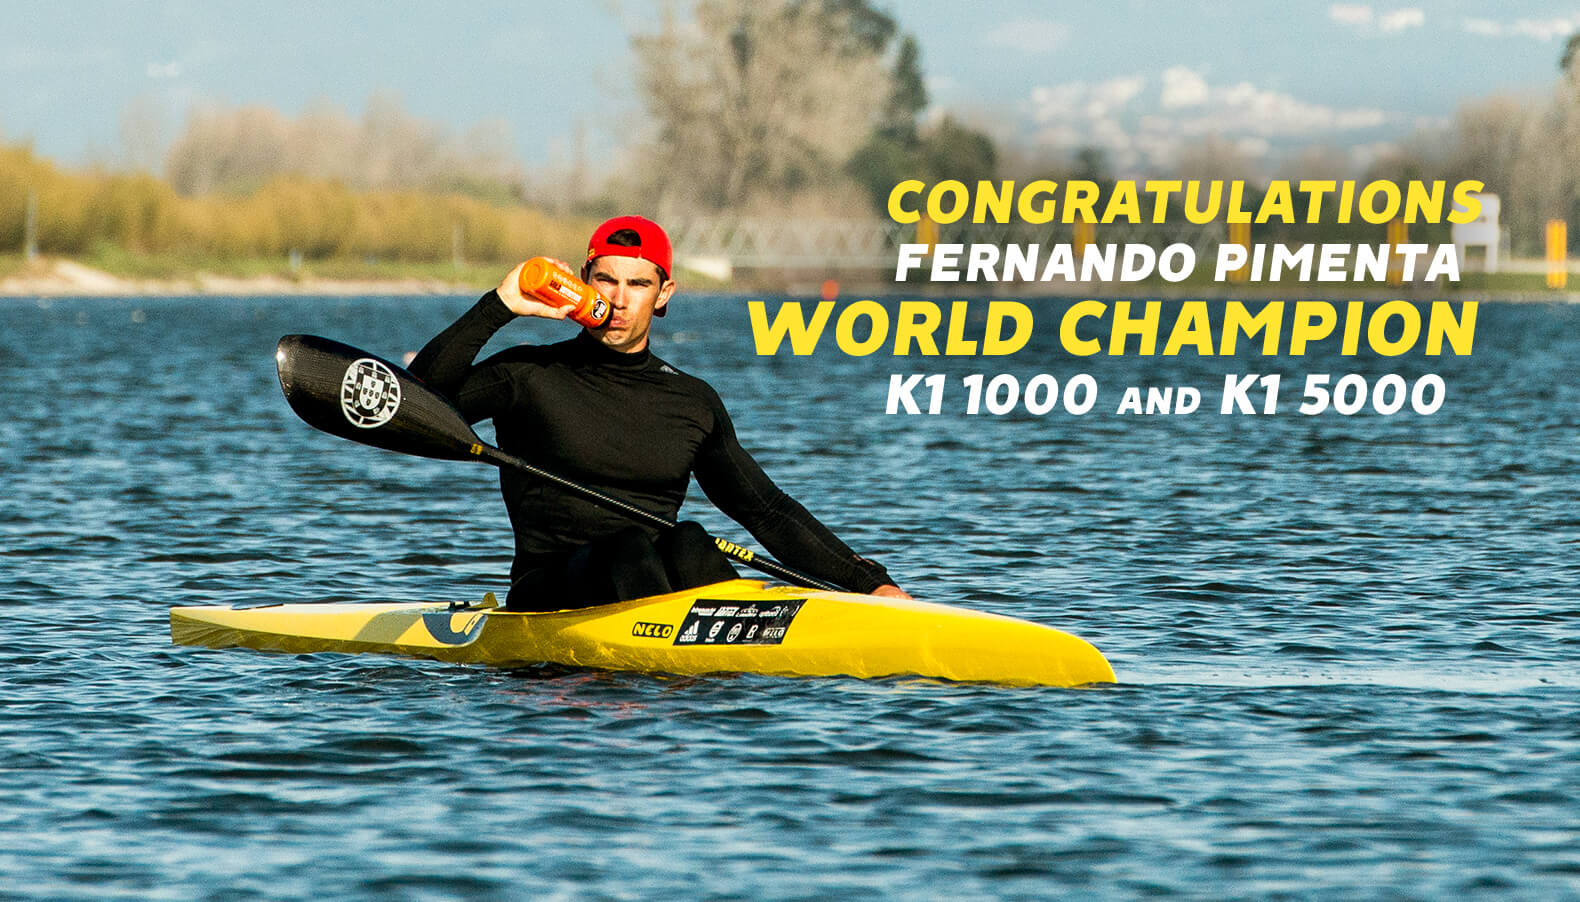 Fernando Pimenta World Champion Canoing